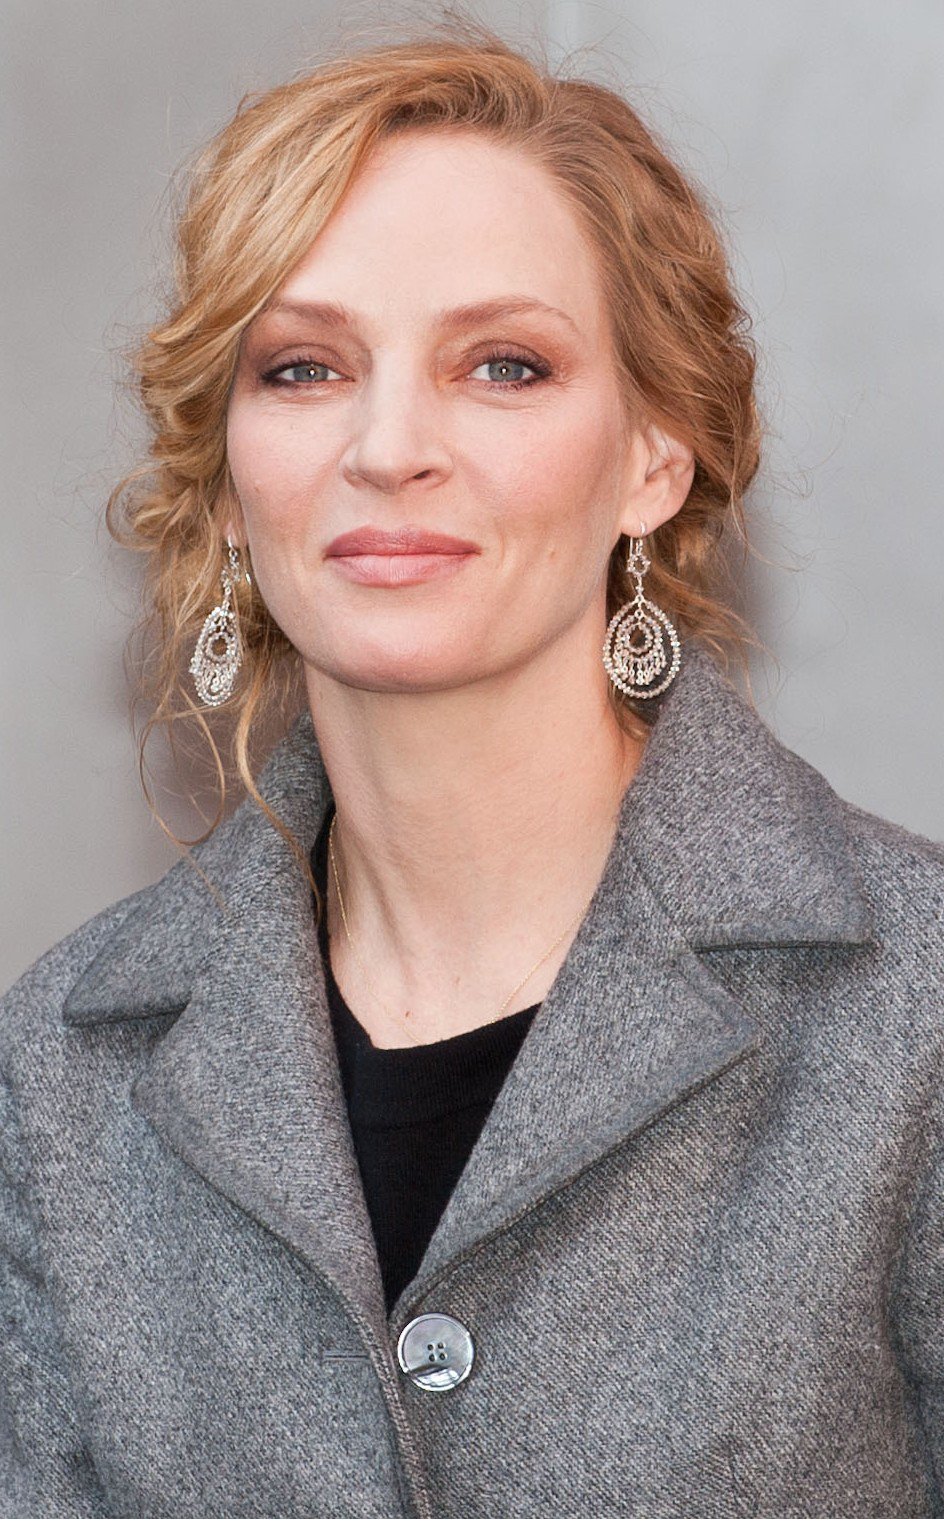 Photo credit: Siebbi (Uma Thurman) [CC BY 3.0 (https://creativecommons.org/licenses/by/3.0)], via Wikimedia Commons